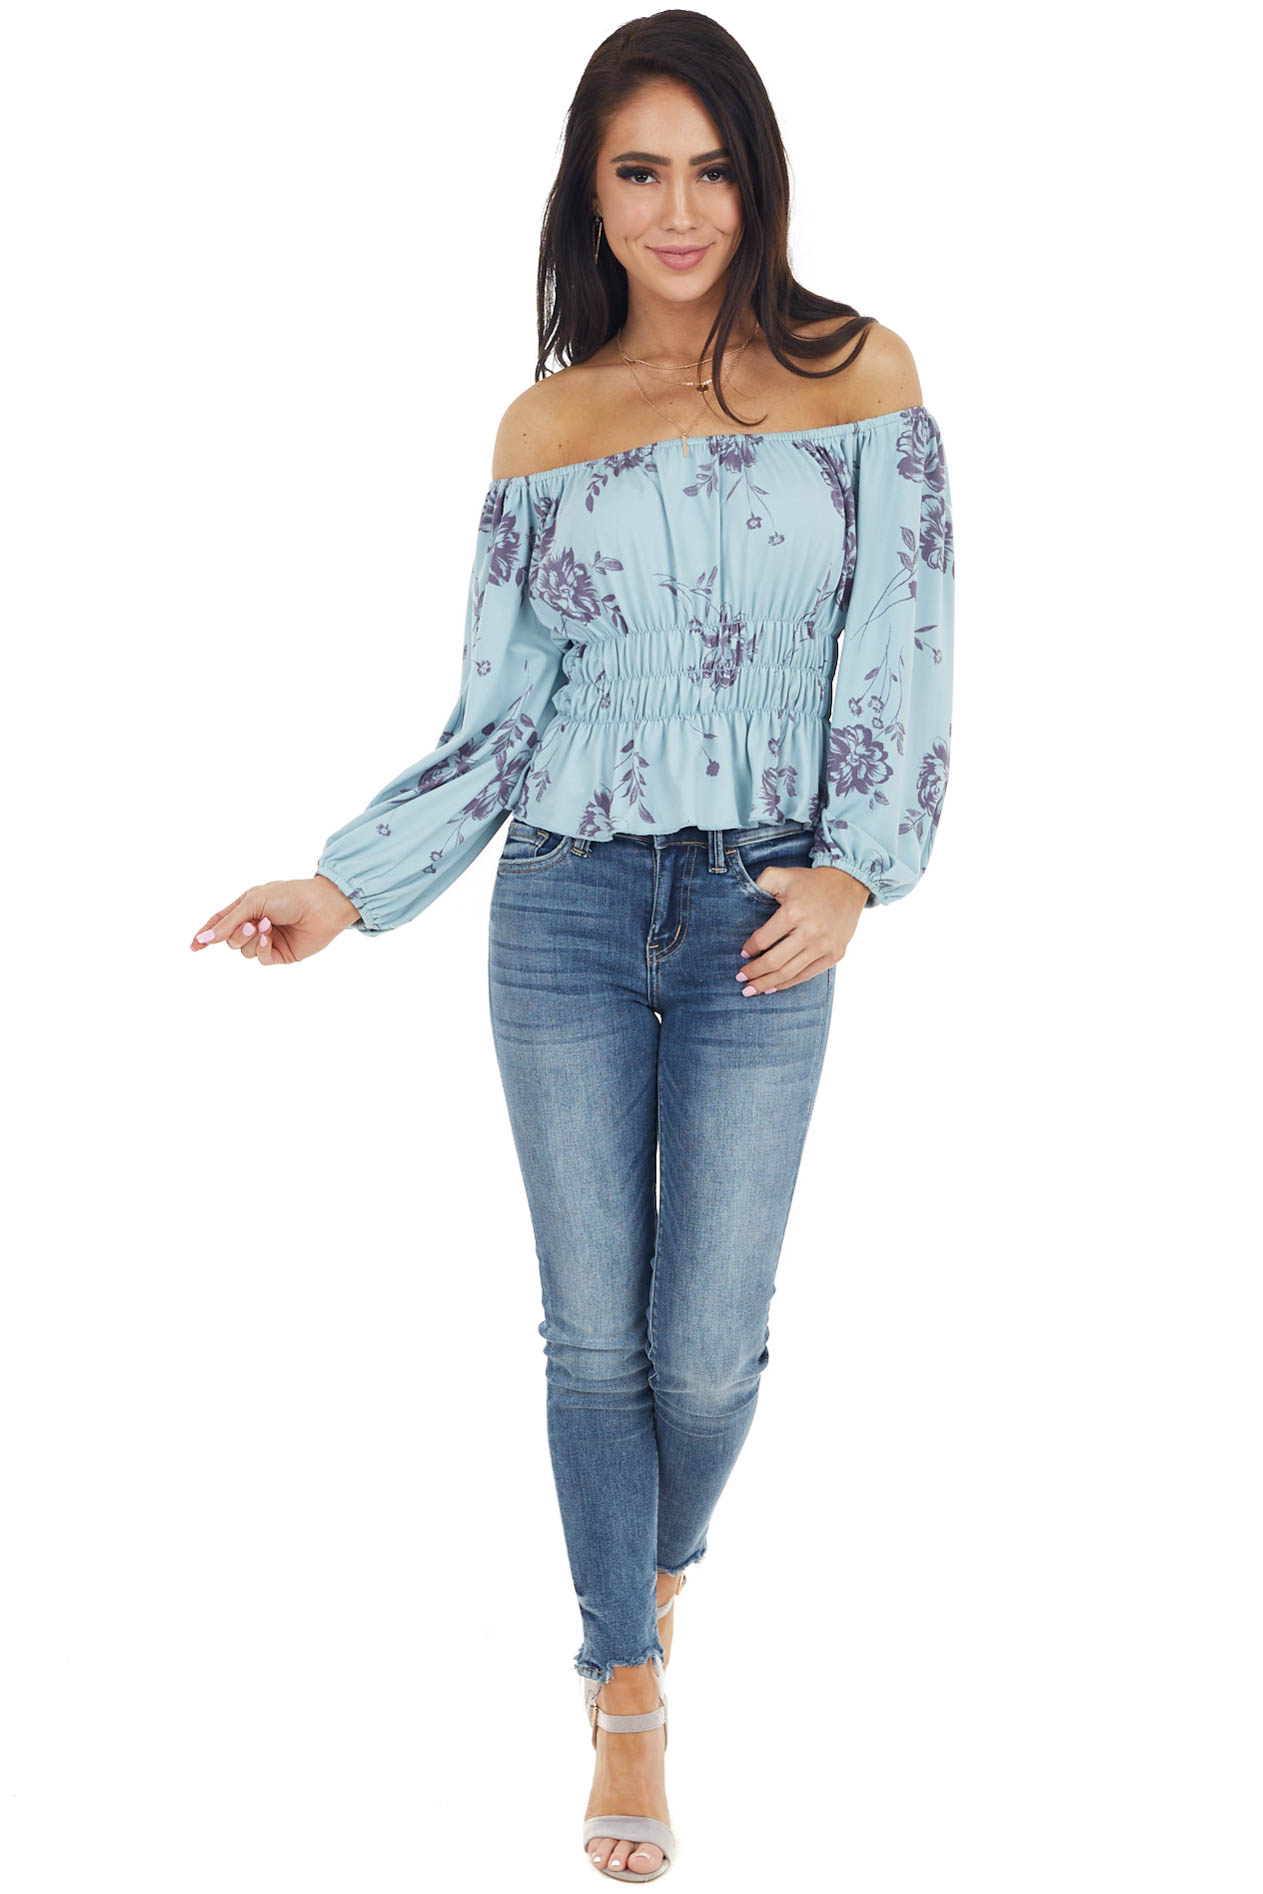 Seafoam and Slate Floral Print Off the Shoulder Knit Top